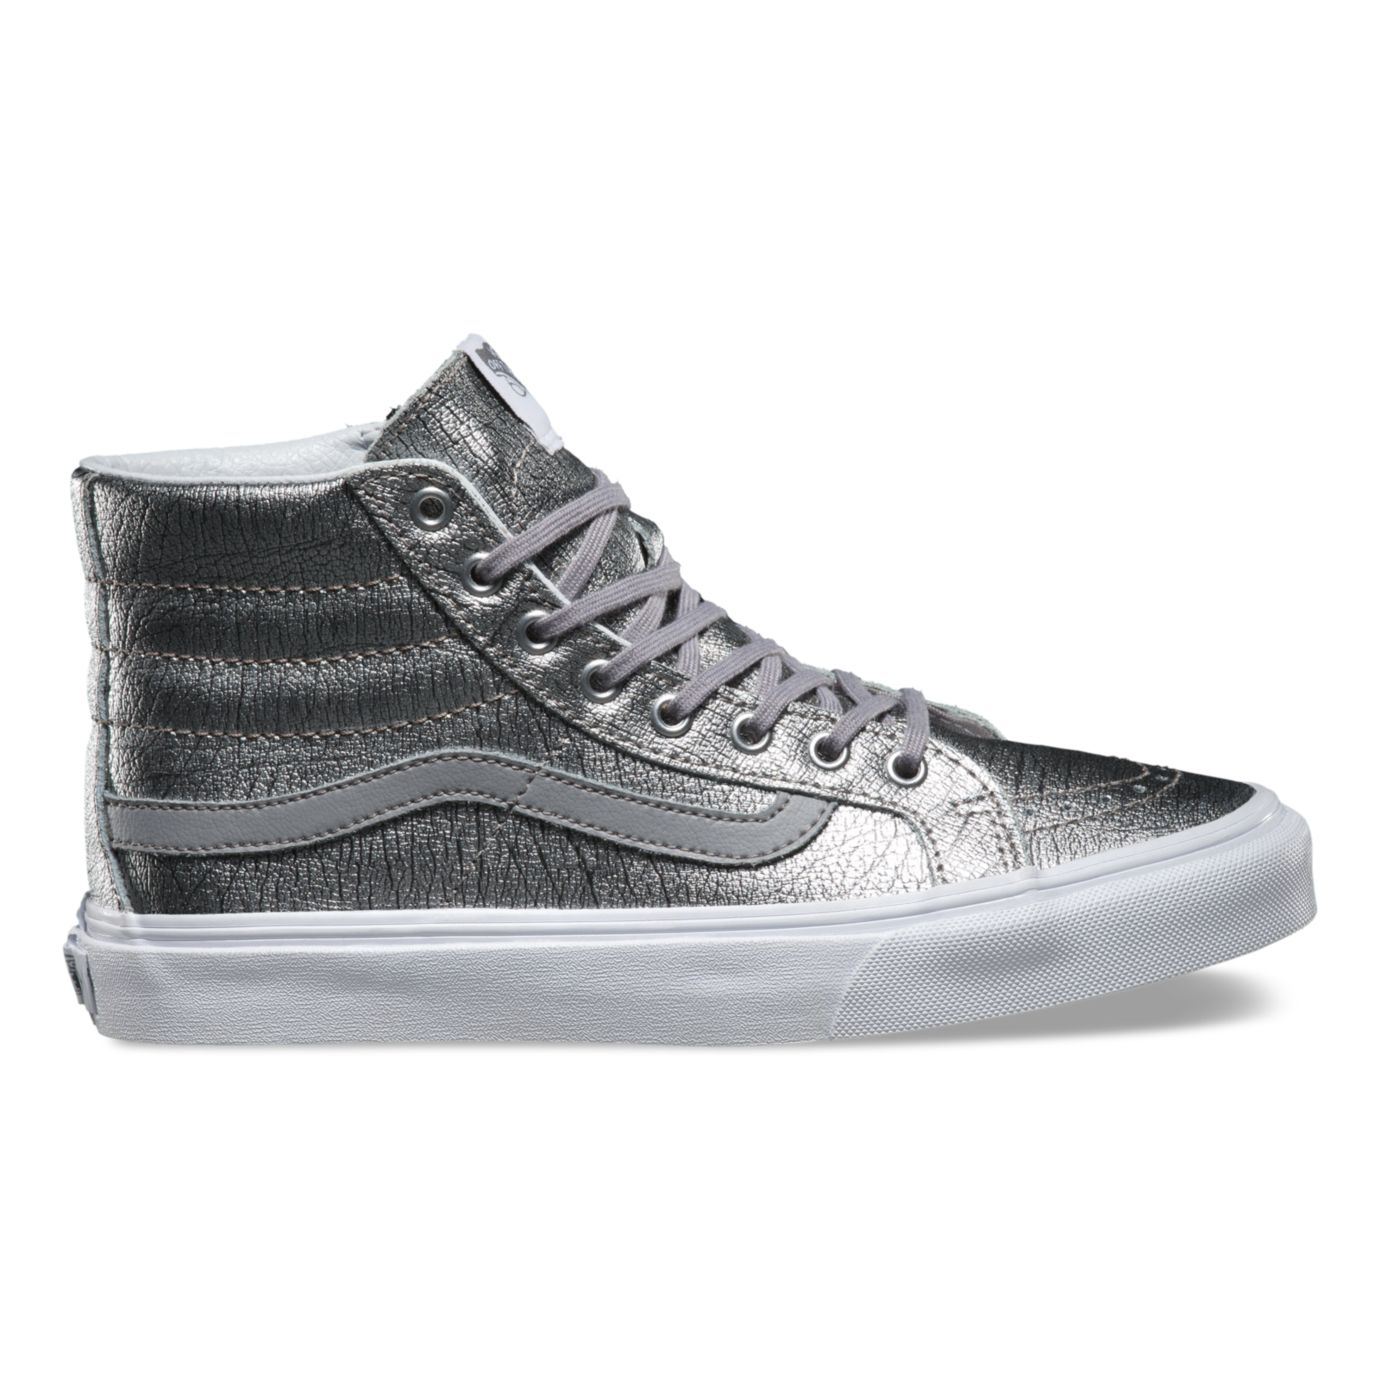 c12bbd9a99e324 Vans Introduces the New Laser-Cut Sk8-Hi Decon and Classic Slip-On